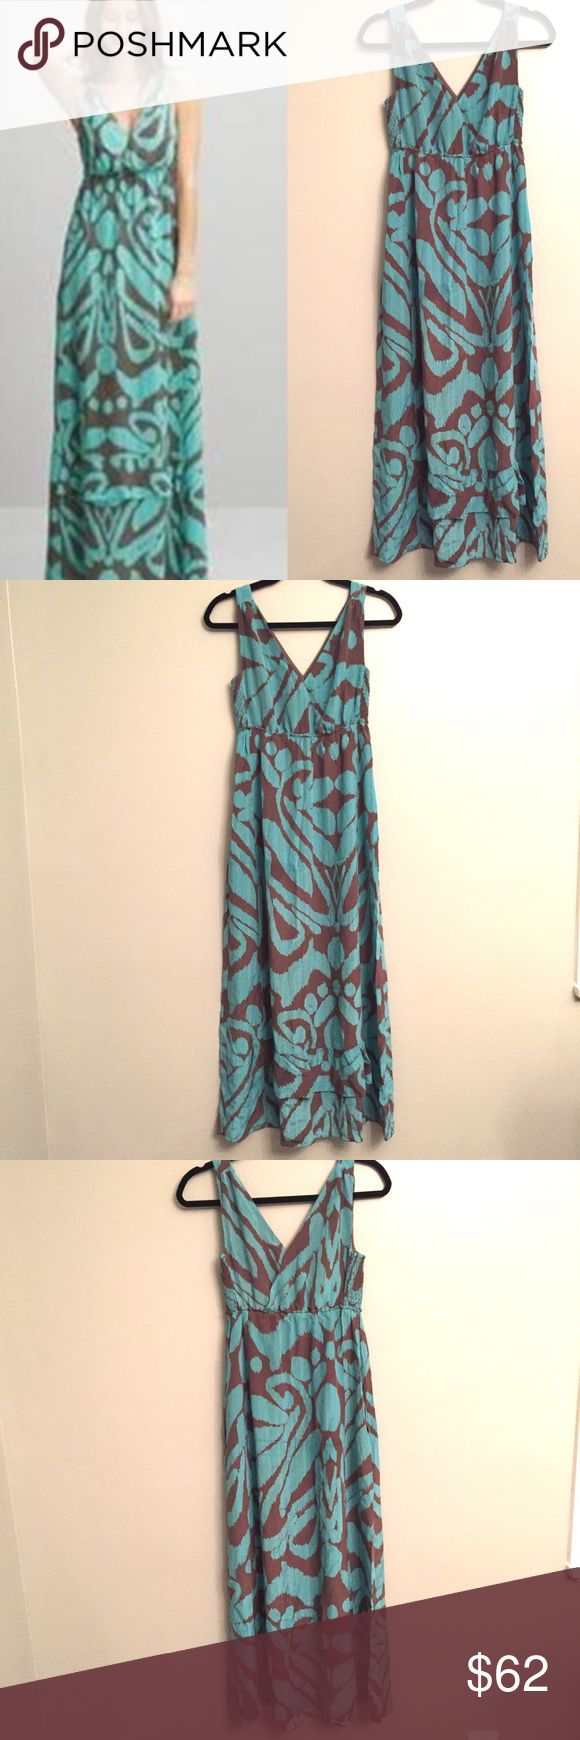 "BANANA REPUBLIC 100% Silk Maxi Dress Banana Republic empire waist maxi dress with a fun, oversized floral print. Light teal blue with a muted brown print. Low, surplice neckline in the front and back Elasticized empire waistline creating a blouson silhouette. A-line skirt with a wide ruffle at the hem. 100% silk; lined. Perfect for a nice summer day! Size 0. Excellent pre owned condition!!  Length from shoulder: 58"" Banana Republic Dresses Maxi"